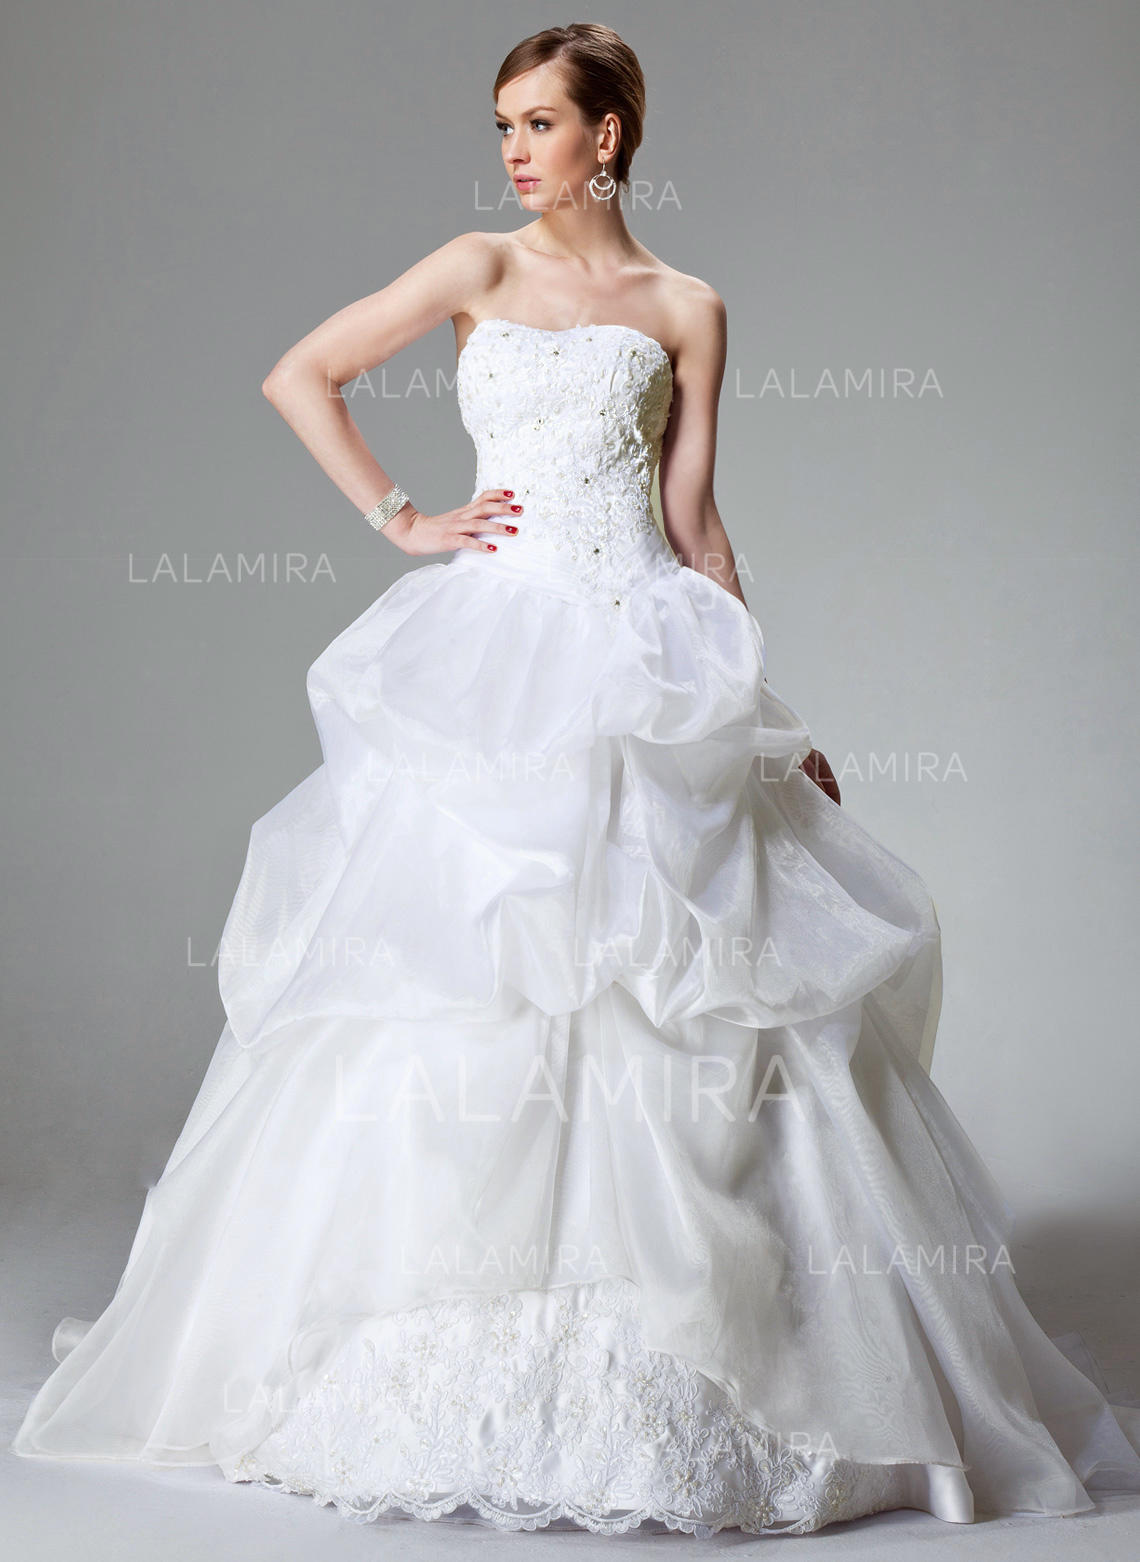 af1f47923c Sweetheart Ball-Gown Wedding Dresses Satin Organza Lace Beading Sleeveless  Chapel Train (002000423)